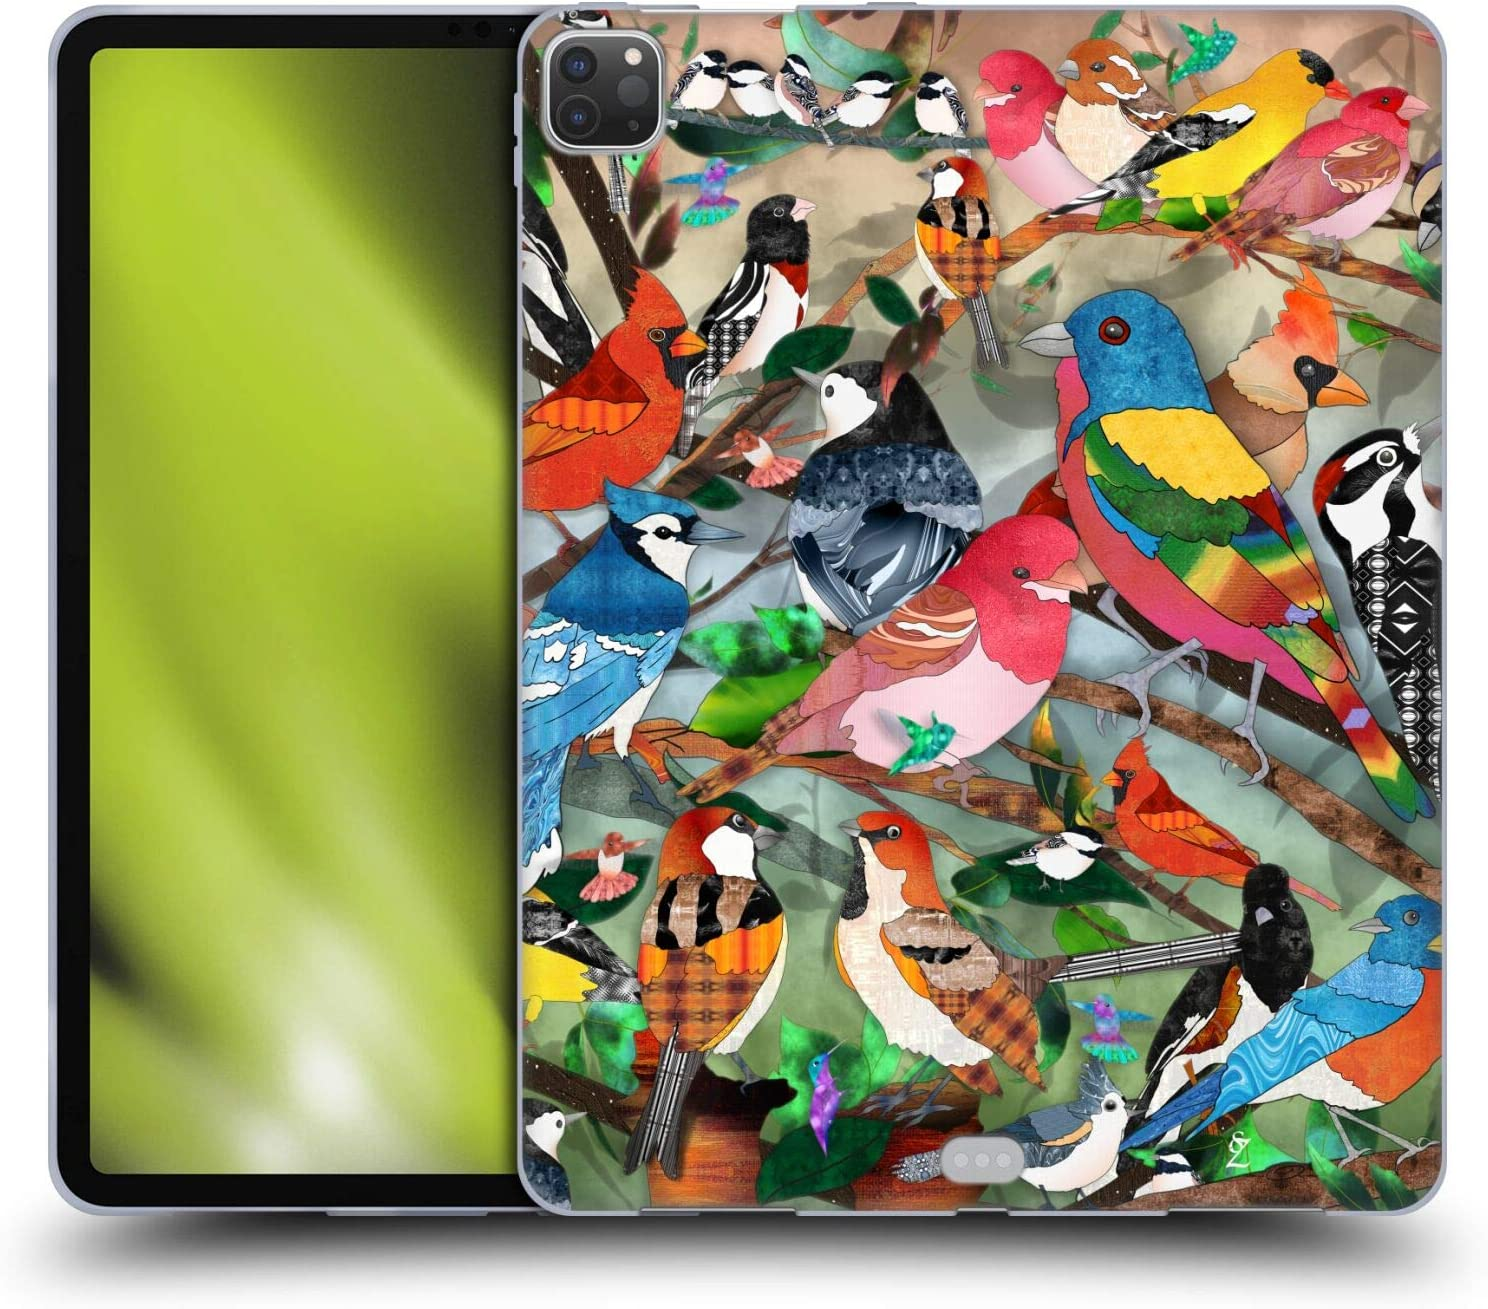 Head Case Designs Officially Licensed Suzan Lind Medley 2 Birds Soft Gel Case Compatible with Apple iPad Pro 12.9 (2020 / 2021)